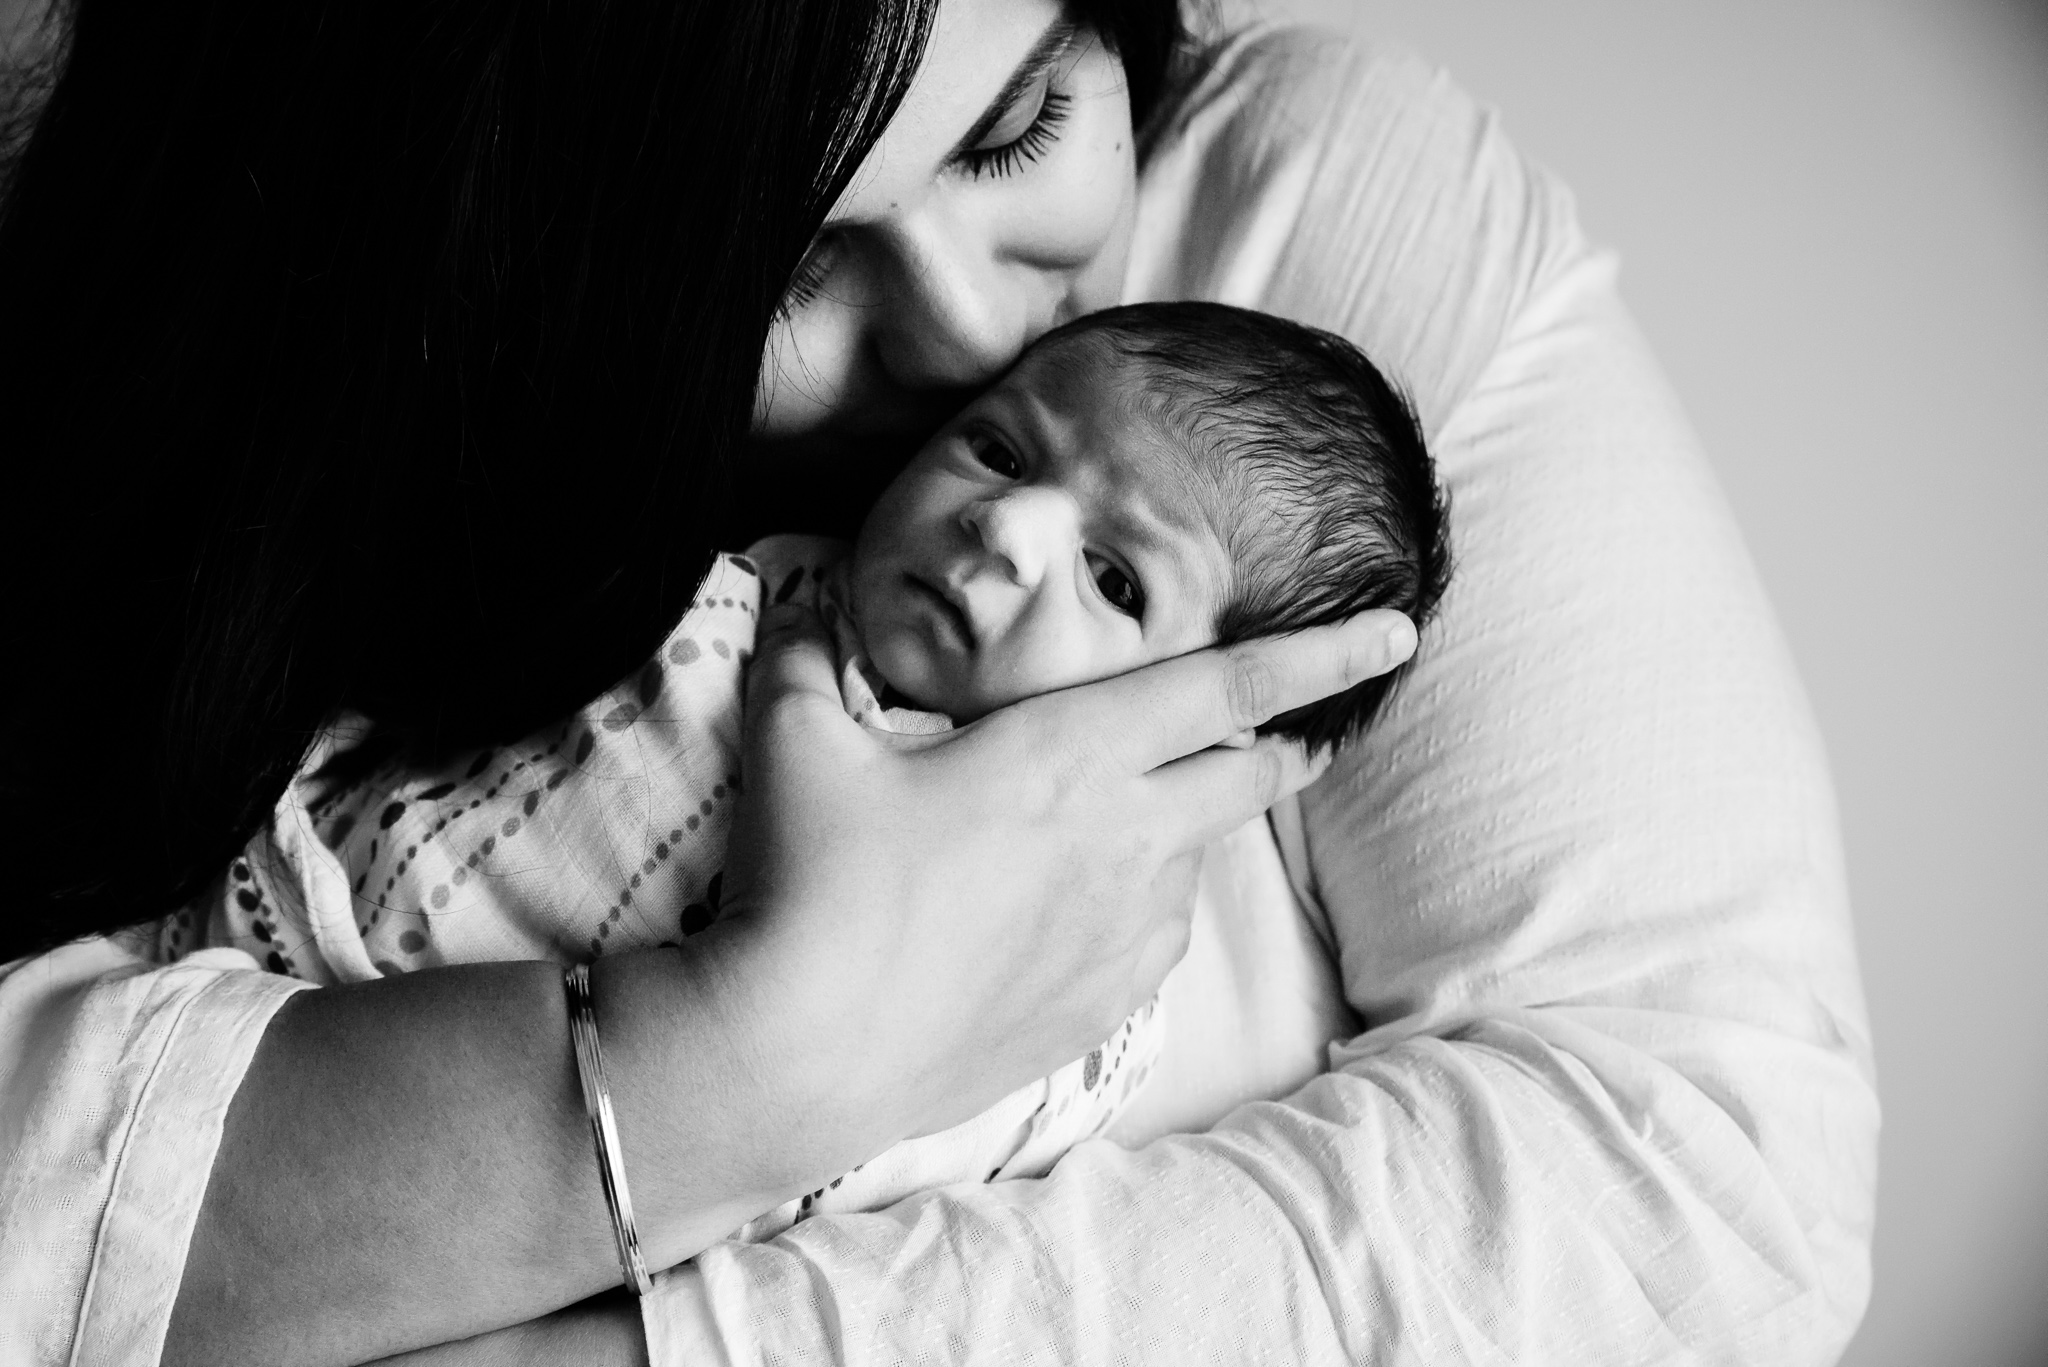 Lana-Photographs-Dubai-Newborn-Photographer-Sanam-SP-05.jpg